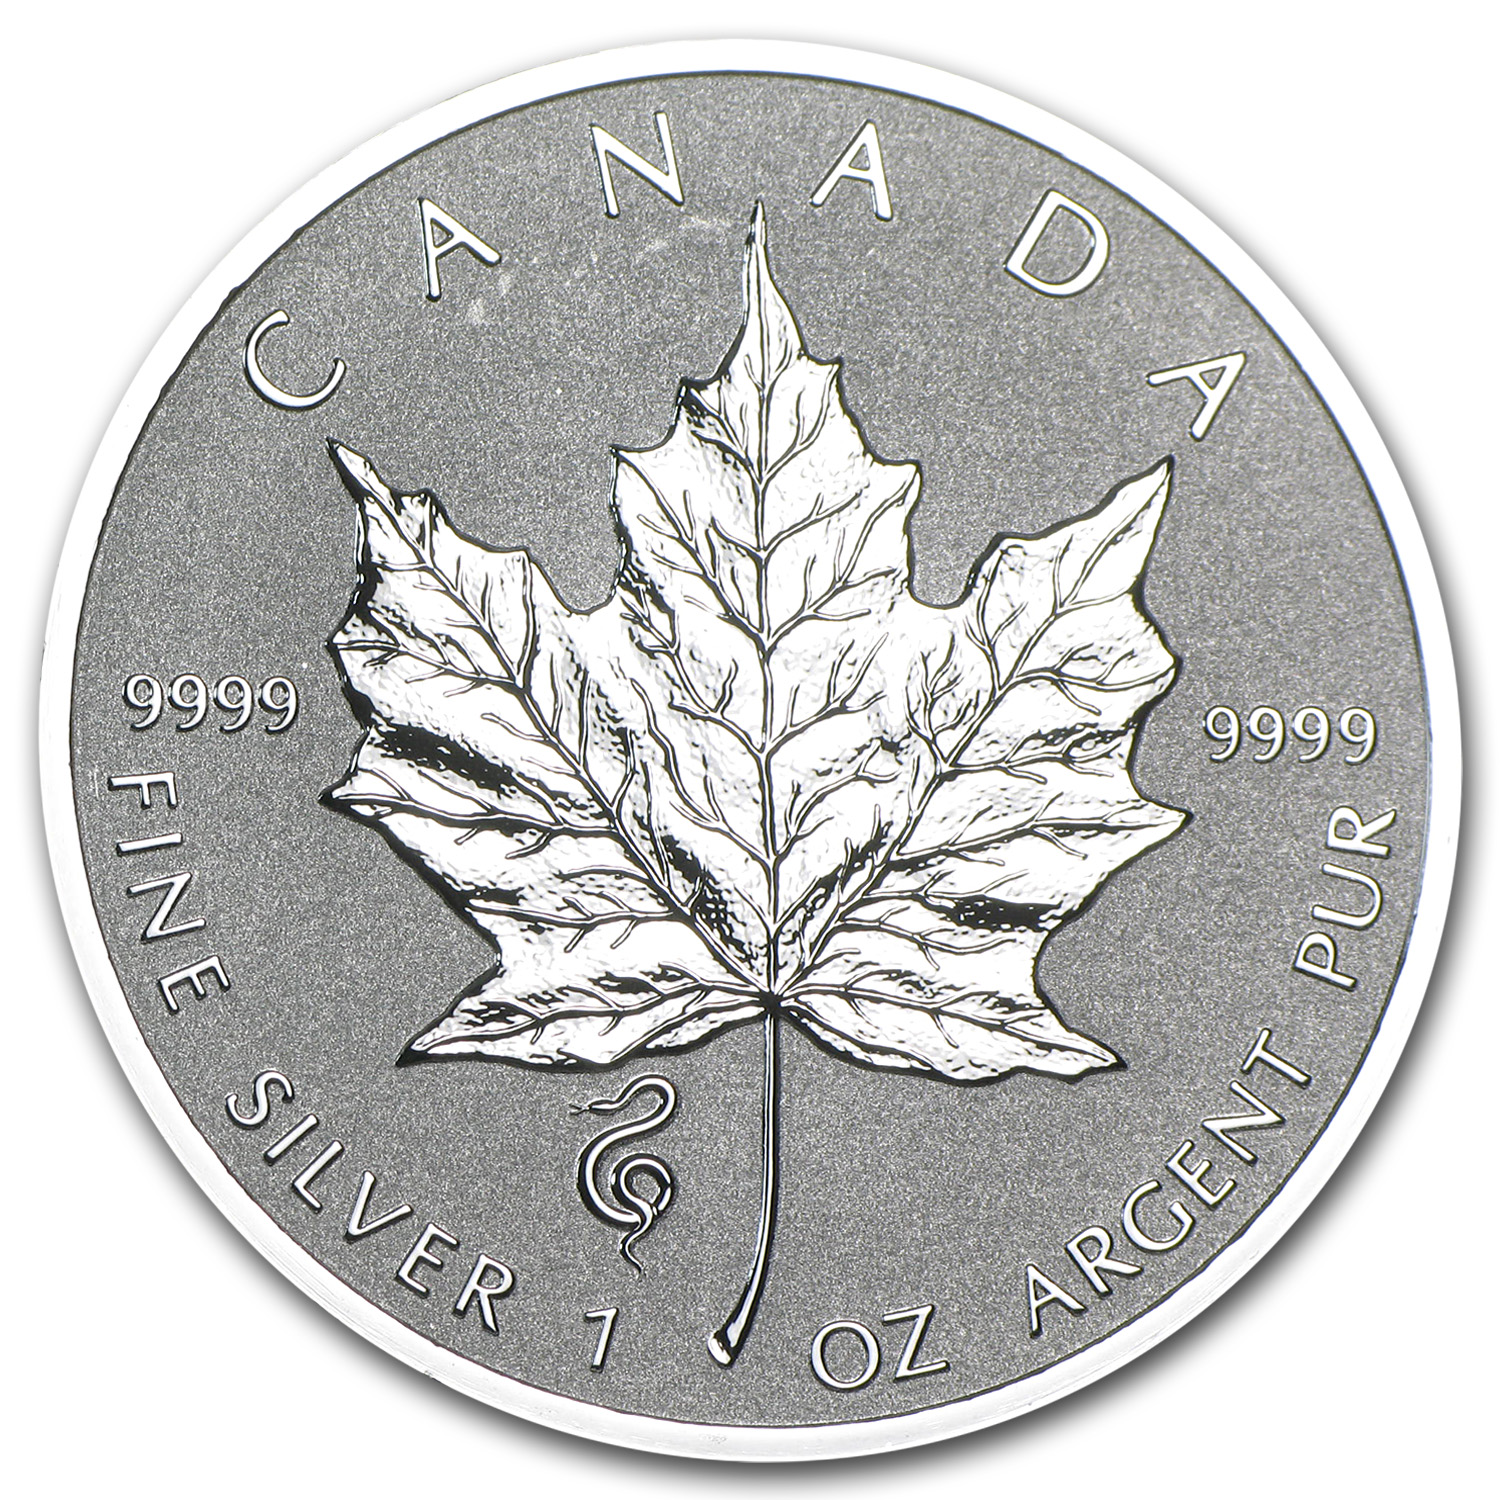 Maple Leaf 2013 2013 Canada 1 oz Silver Maple